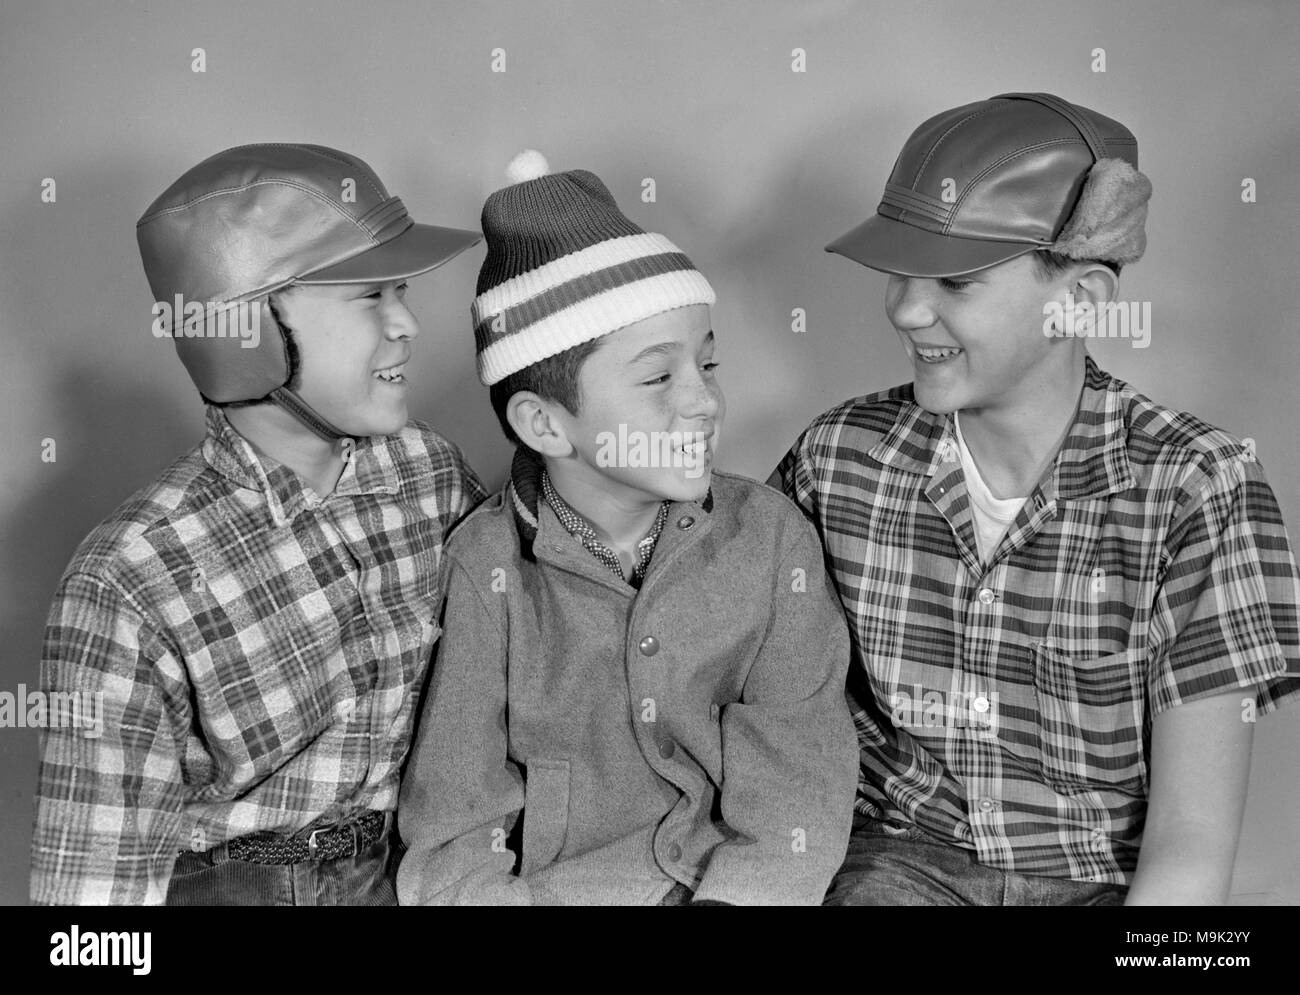 Three California pre-teen boys model period hats and clothes, ca. 1960. - Stock Image